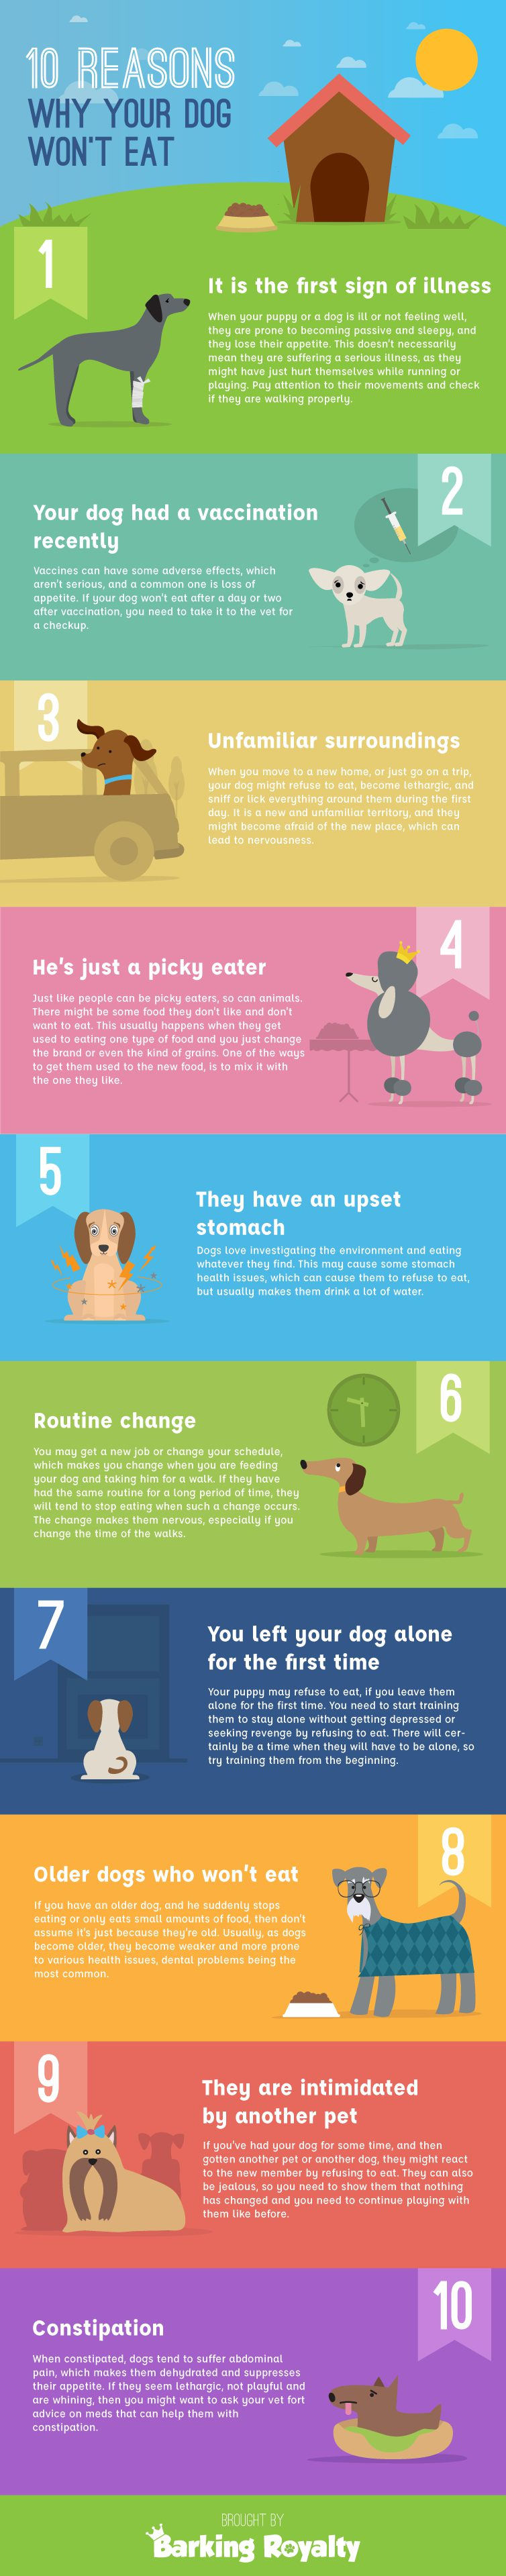 Infographic of 10 reasons dog wont eat